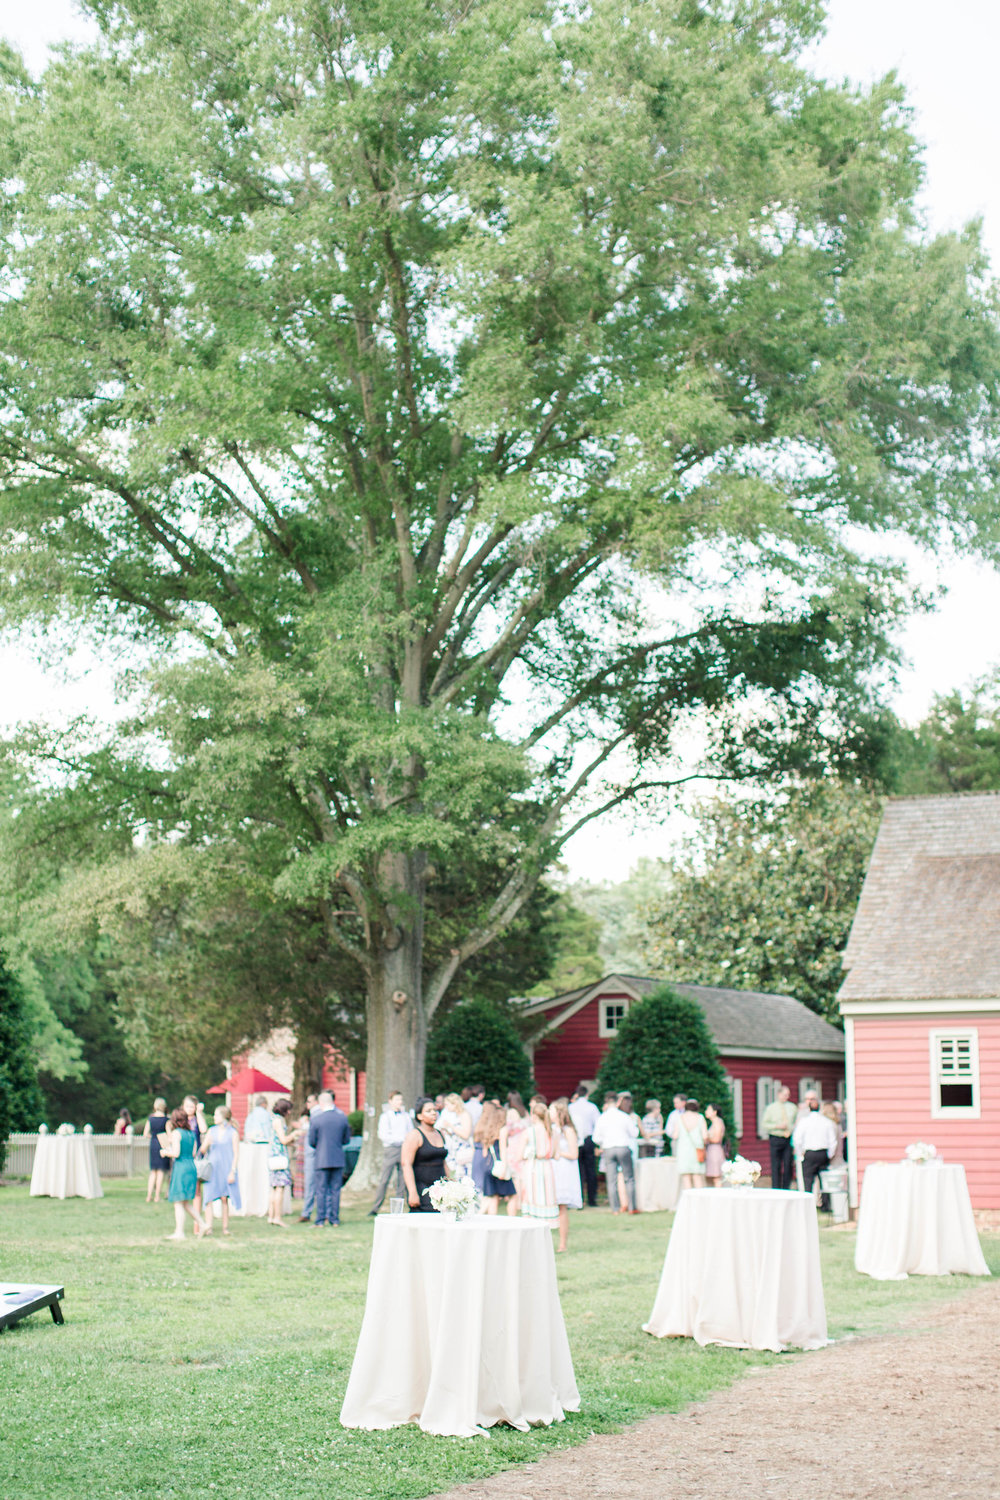 Enjoy exclusive use of the entire grounds for your wedding ceremony and reception.